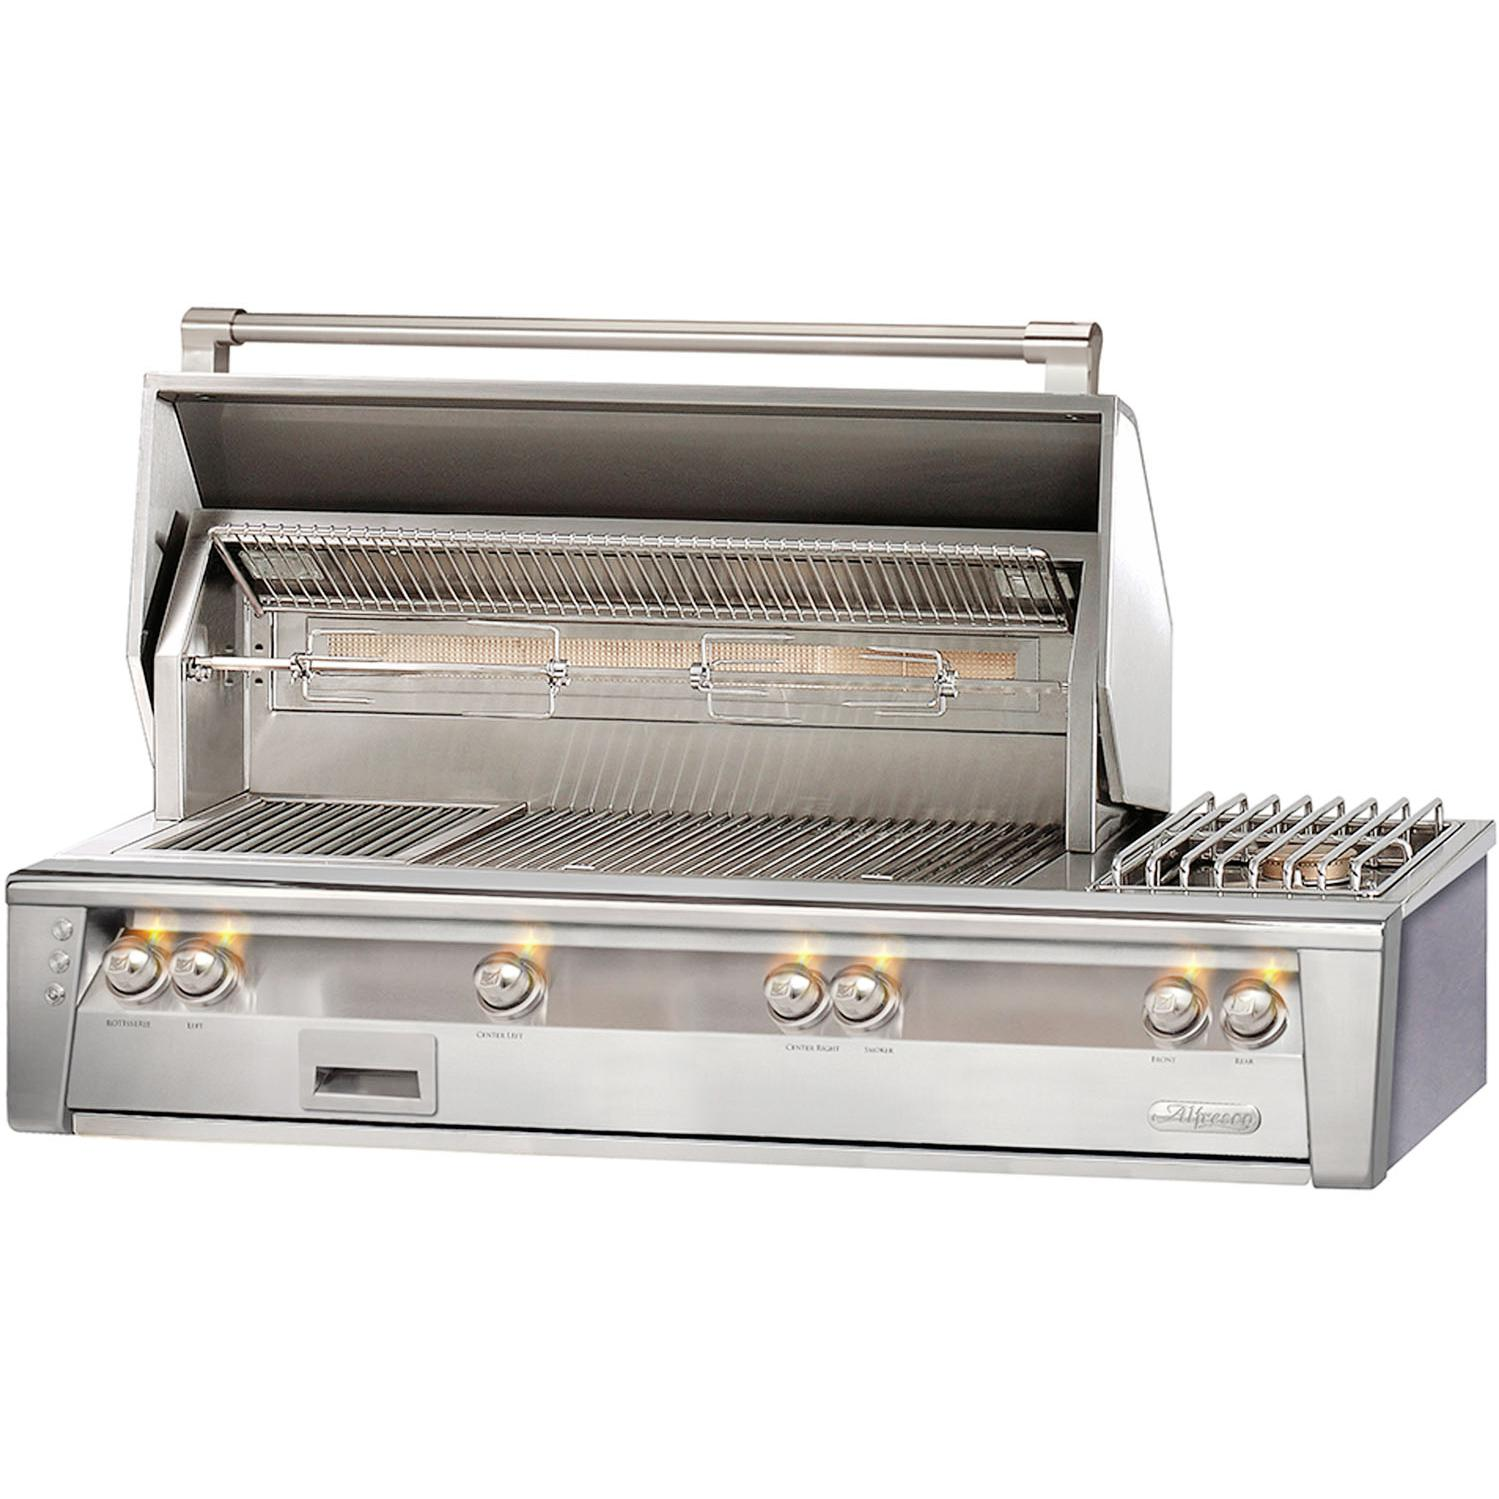 Alfresco LXE 56-Inch Built-In Propane Gas Deluxe Grill With Sear Zone, Rotisserie, And Side Burner - ALXE-56SZ-LP 2911938